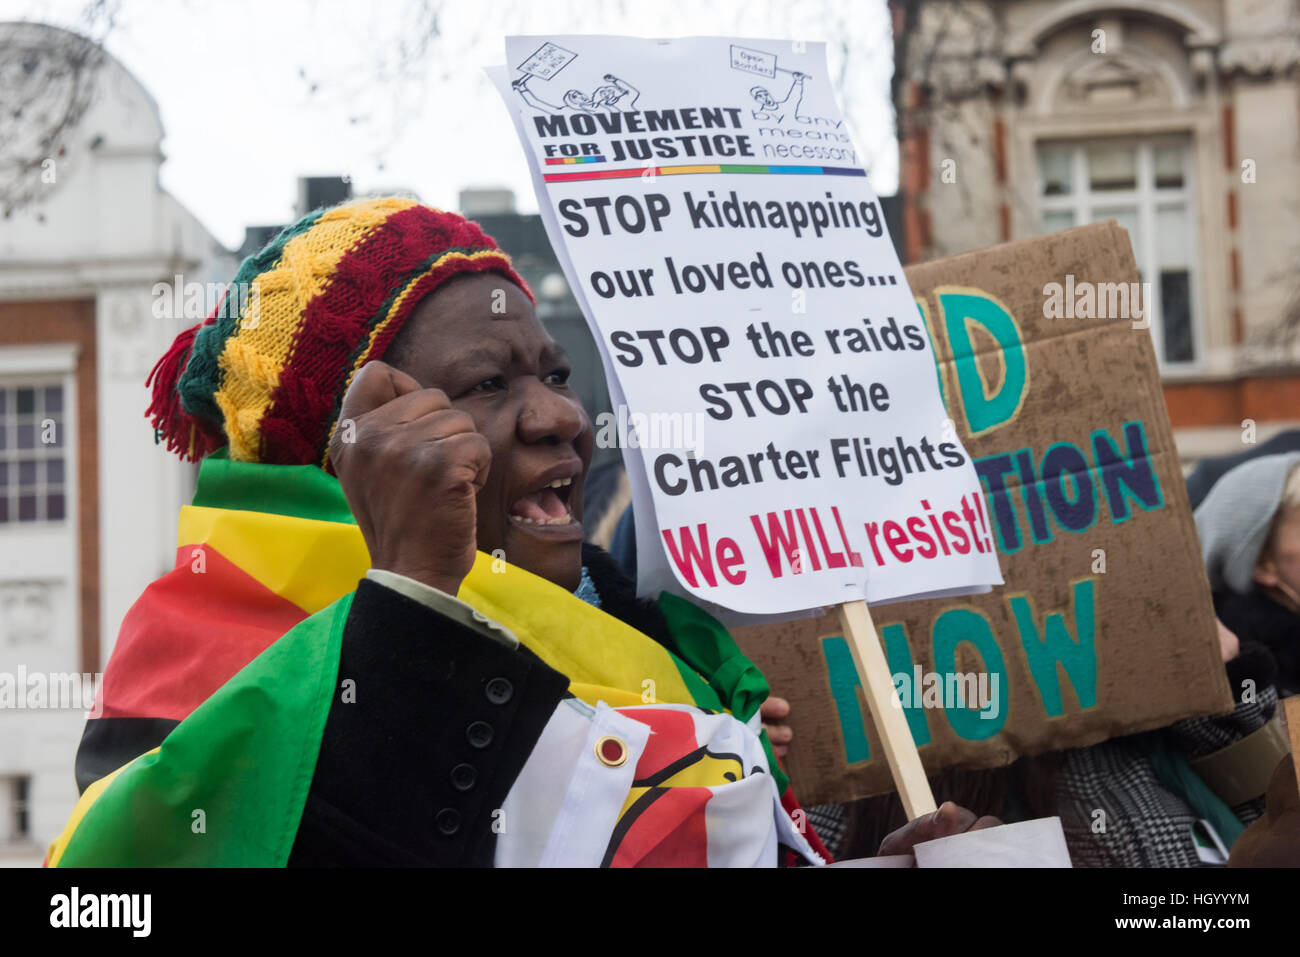 London, UK. 14th January 2017. A Zimbabwean woman at the rally at the end of the Movement for Justice march through - Stock Image